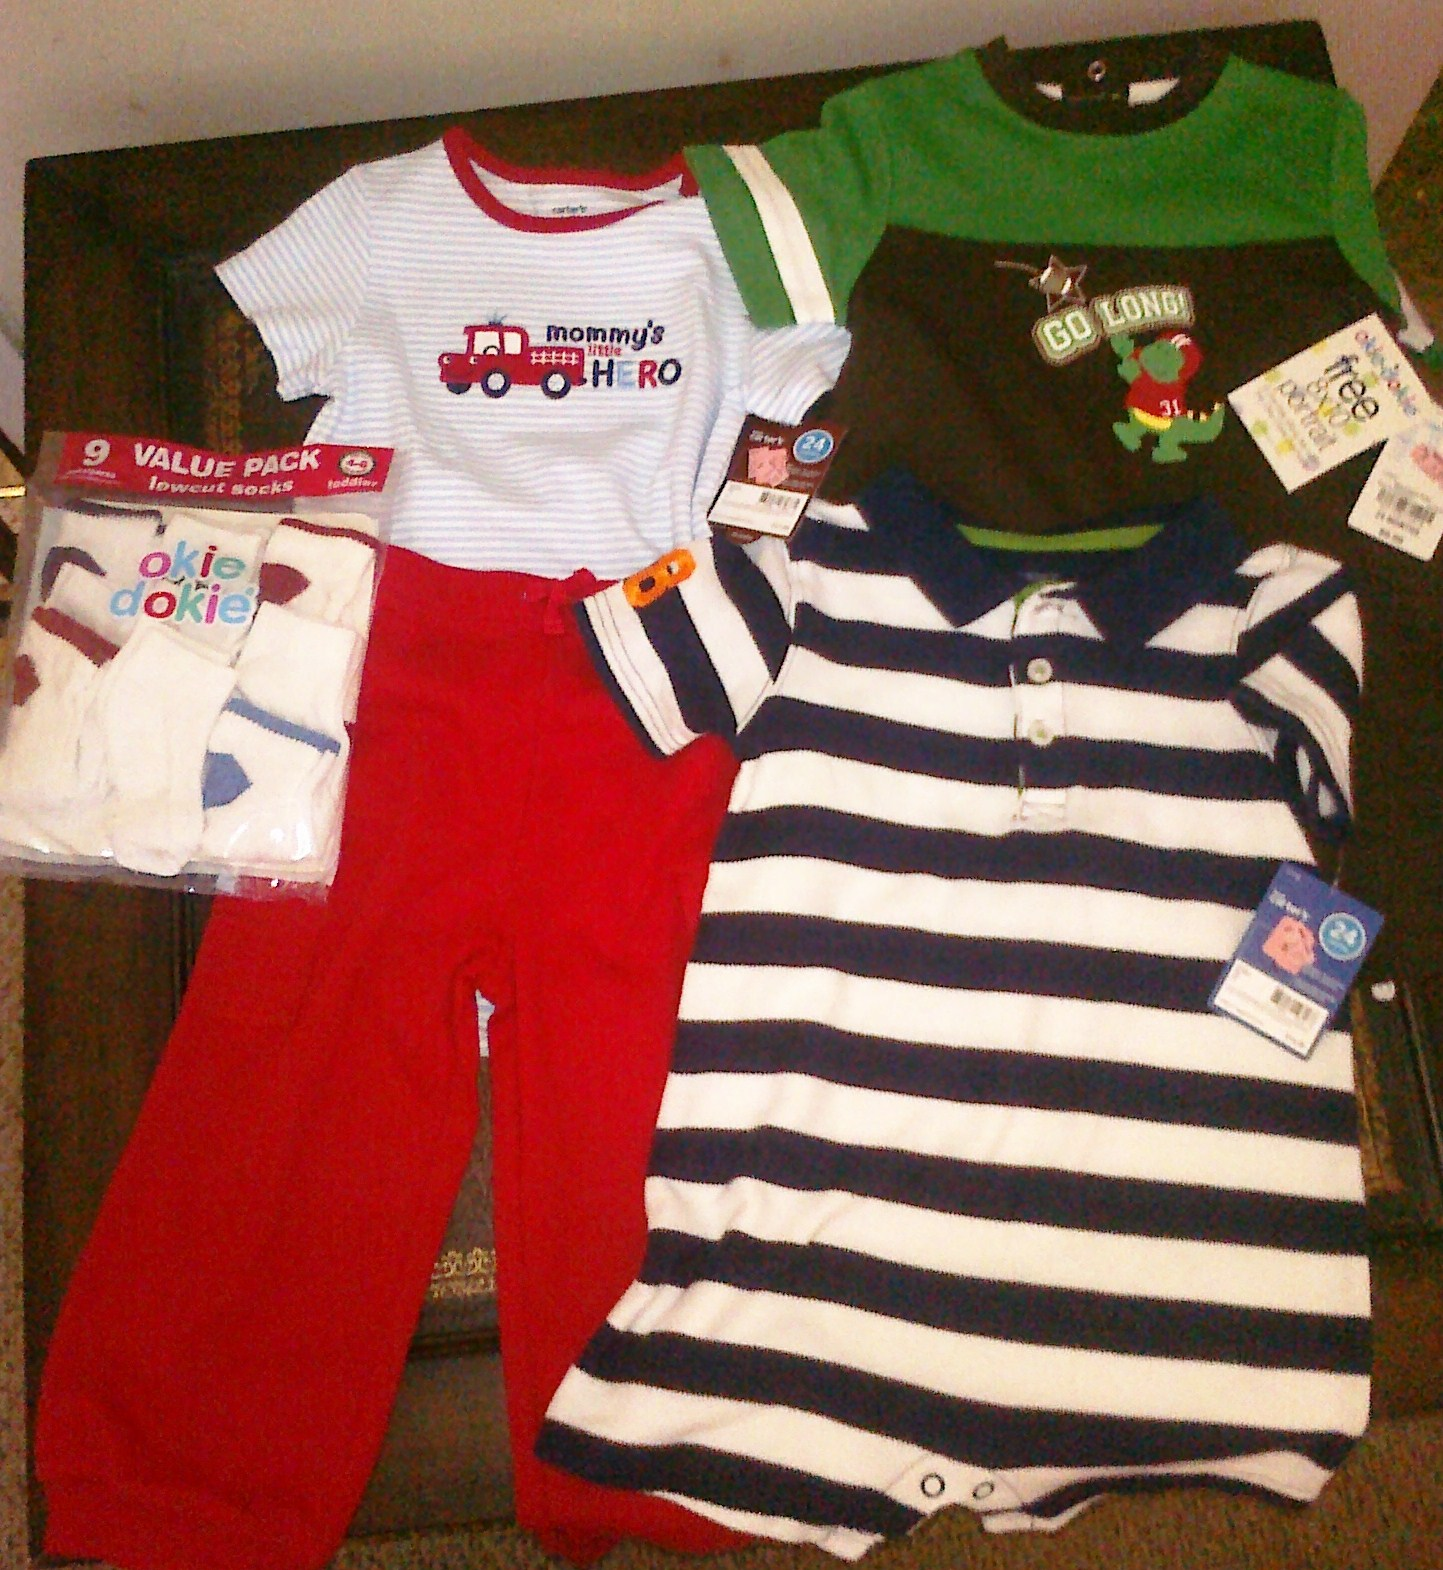 JC Penney Final Clearance off = Cheap Baby Clothes